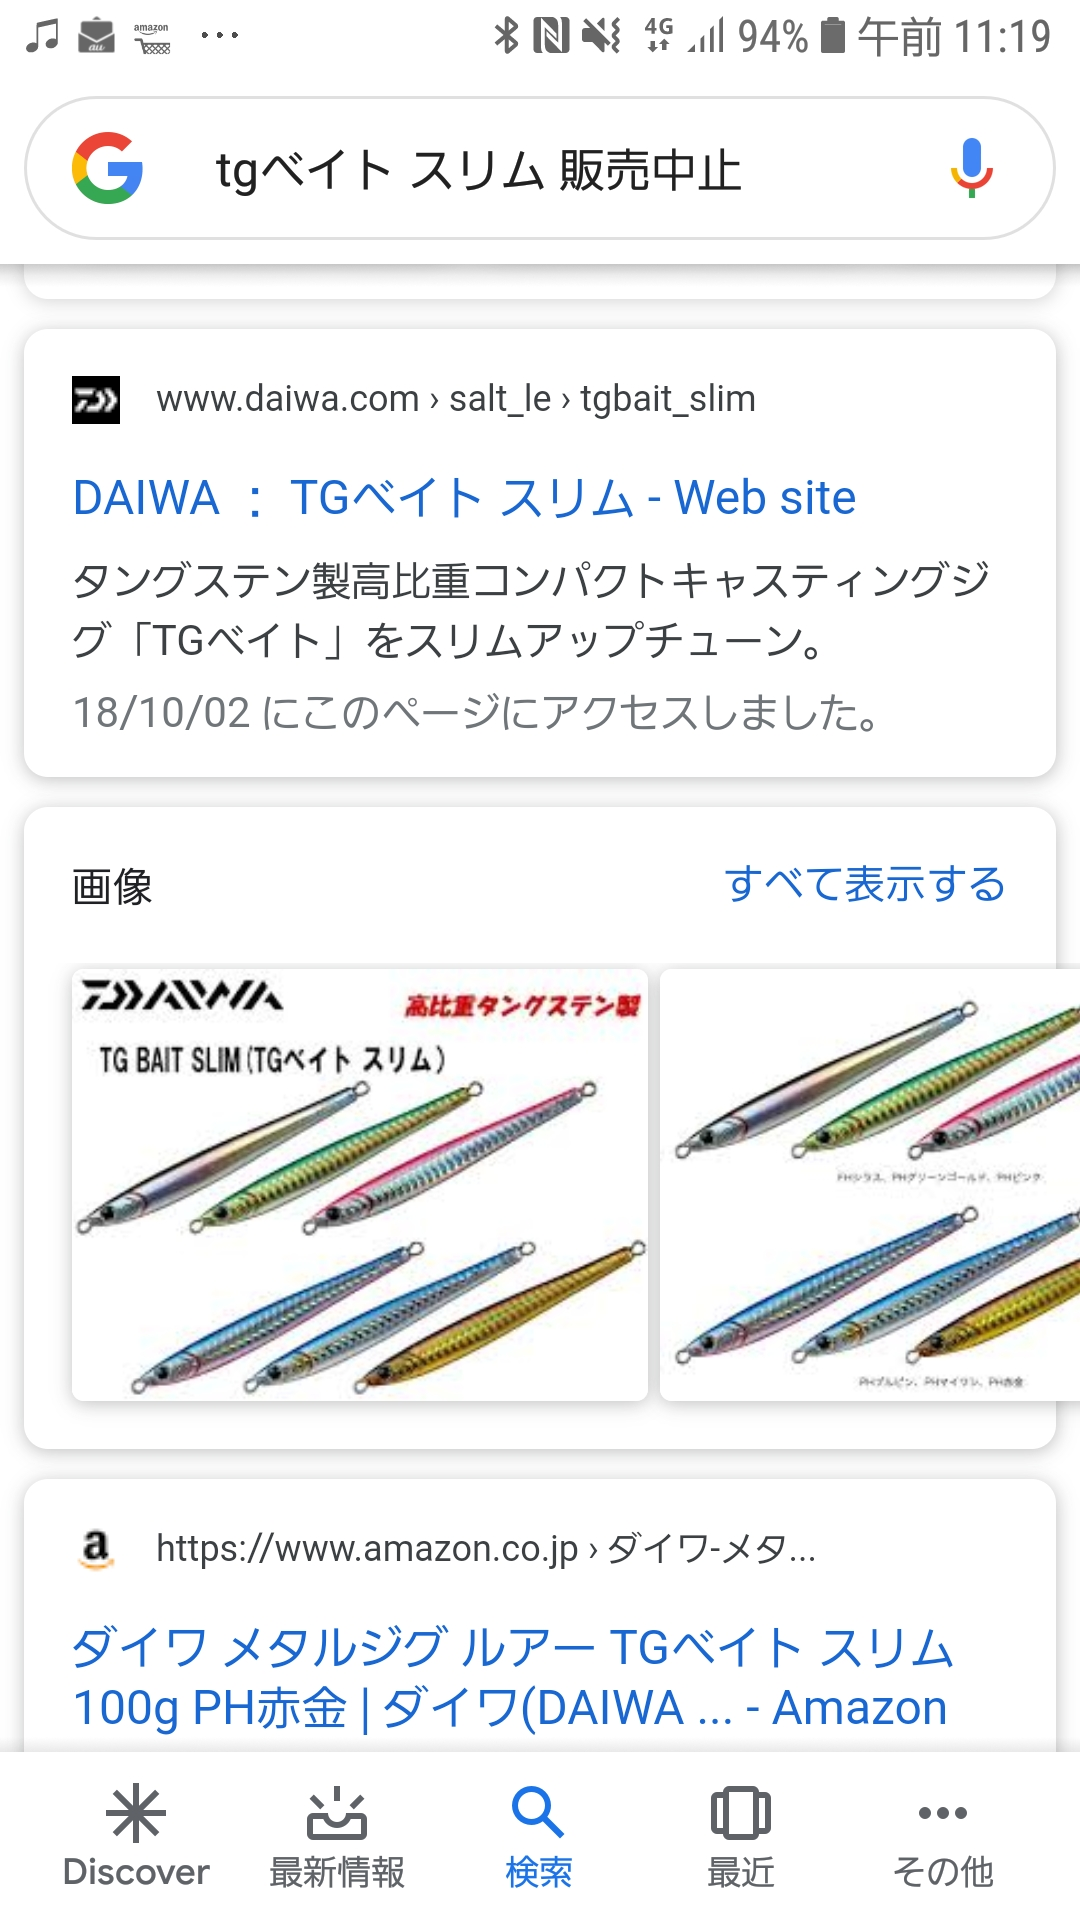 Screenshot_20190531-111910_Google2